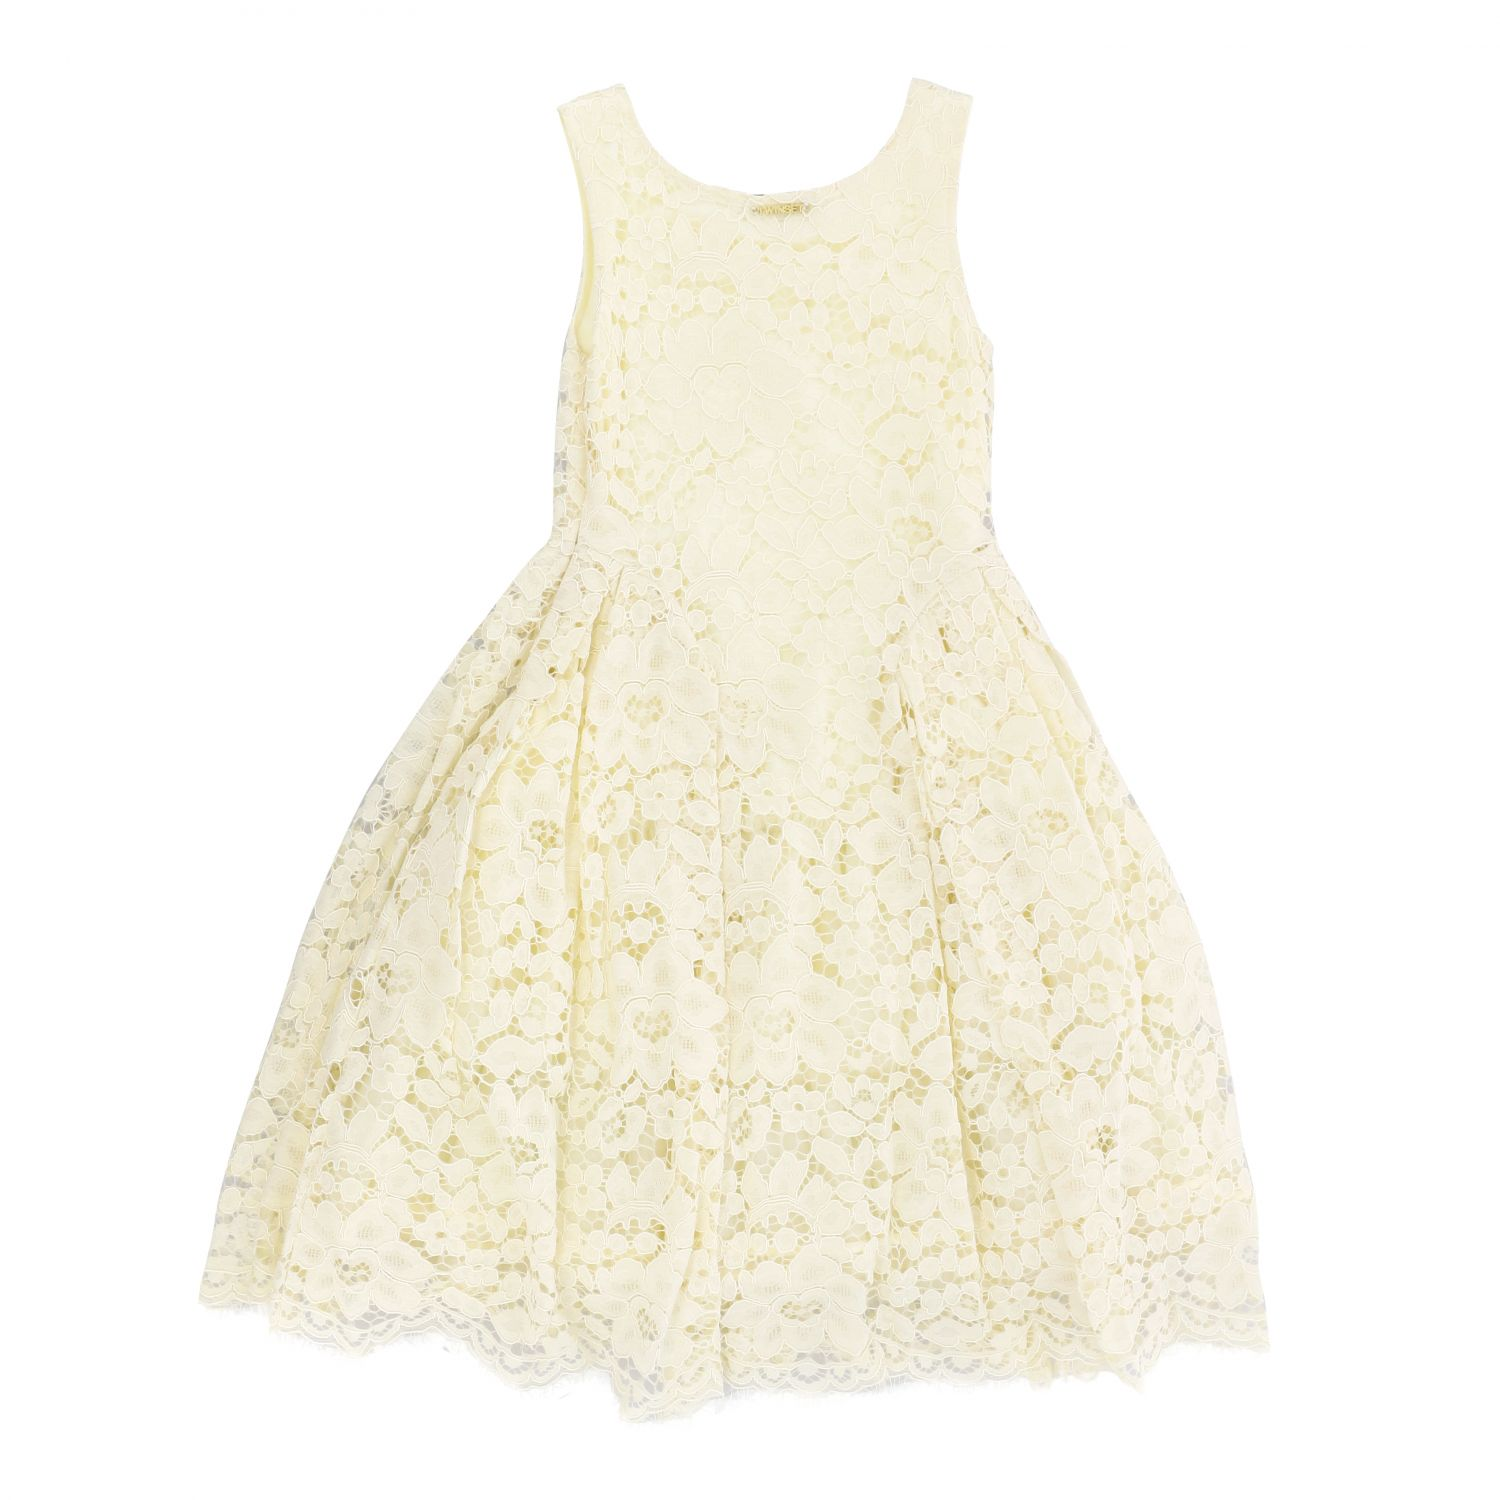 Twin-set lace dress yellow cream 2